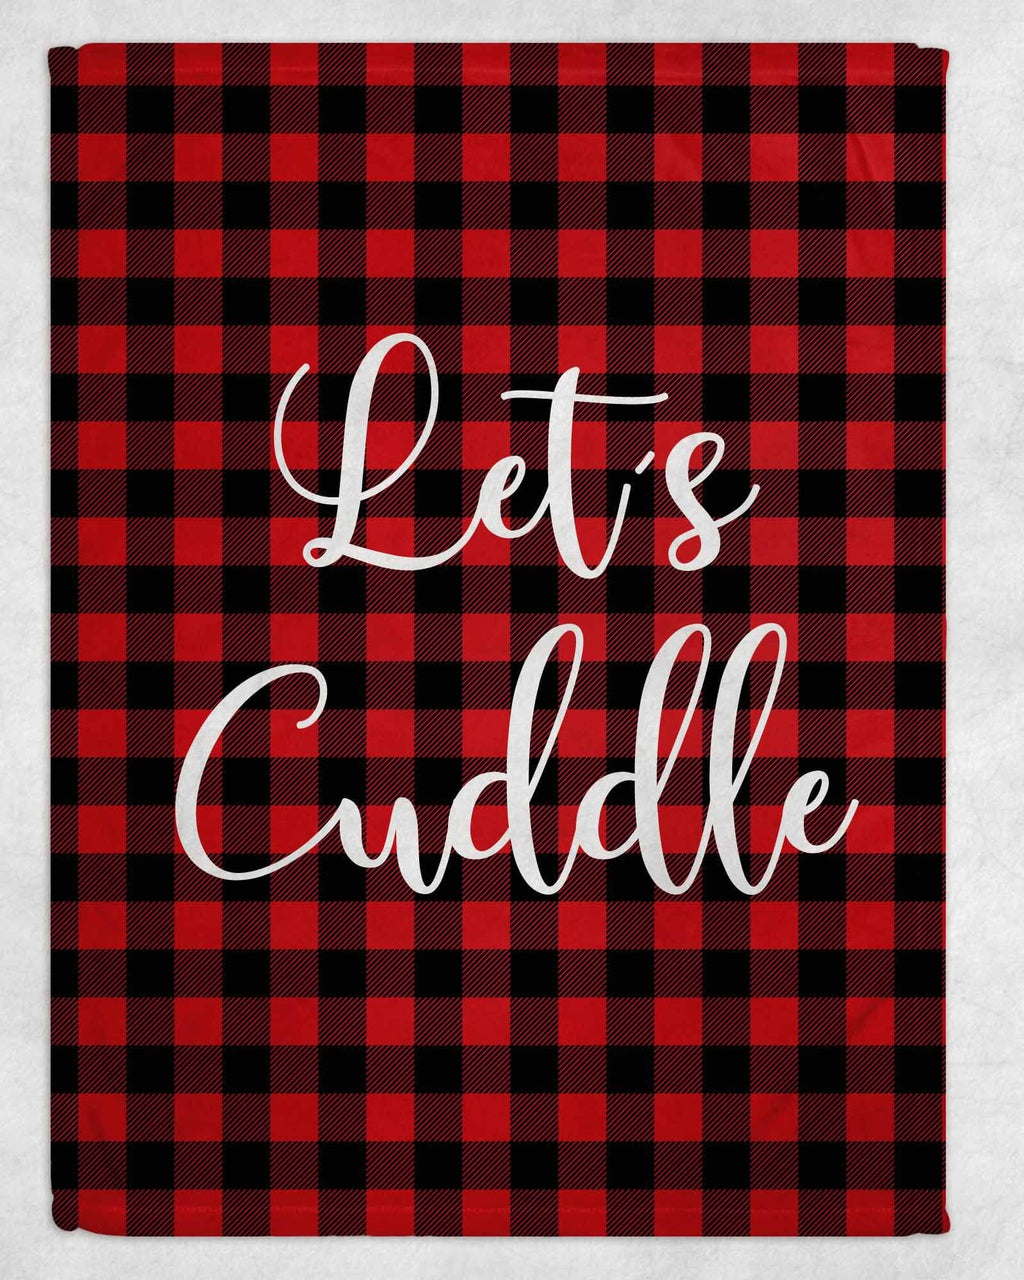 Let's Cuddle Fleece Blanket - Potter's Printing